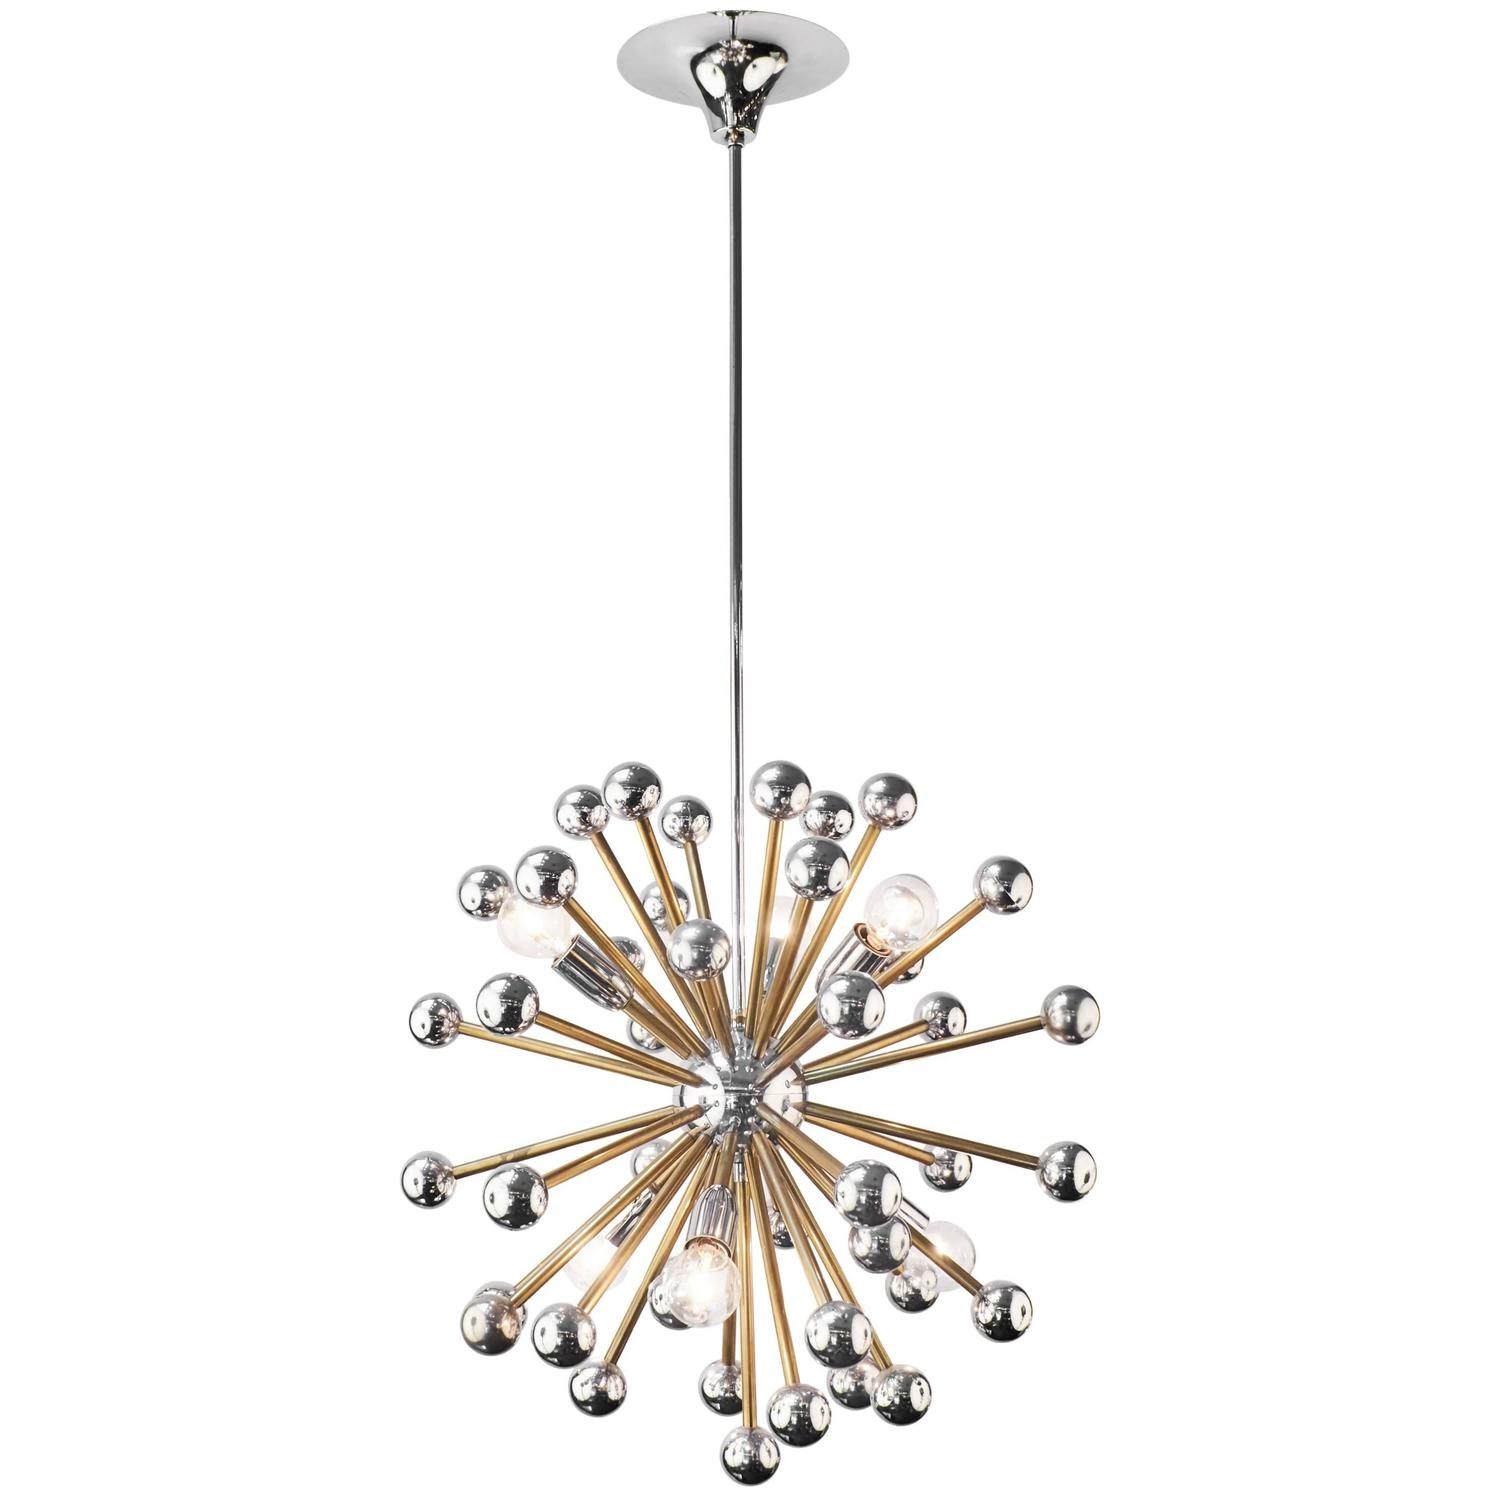 Featured Image of Chrome Sputnik Chandeliers